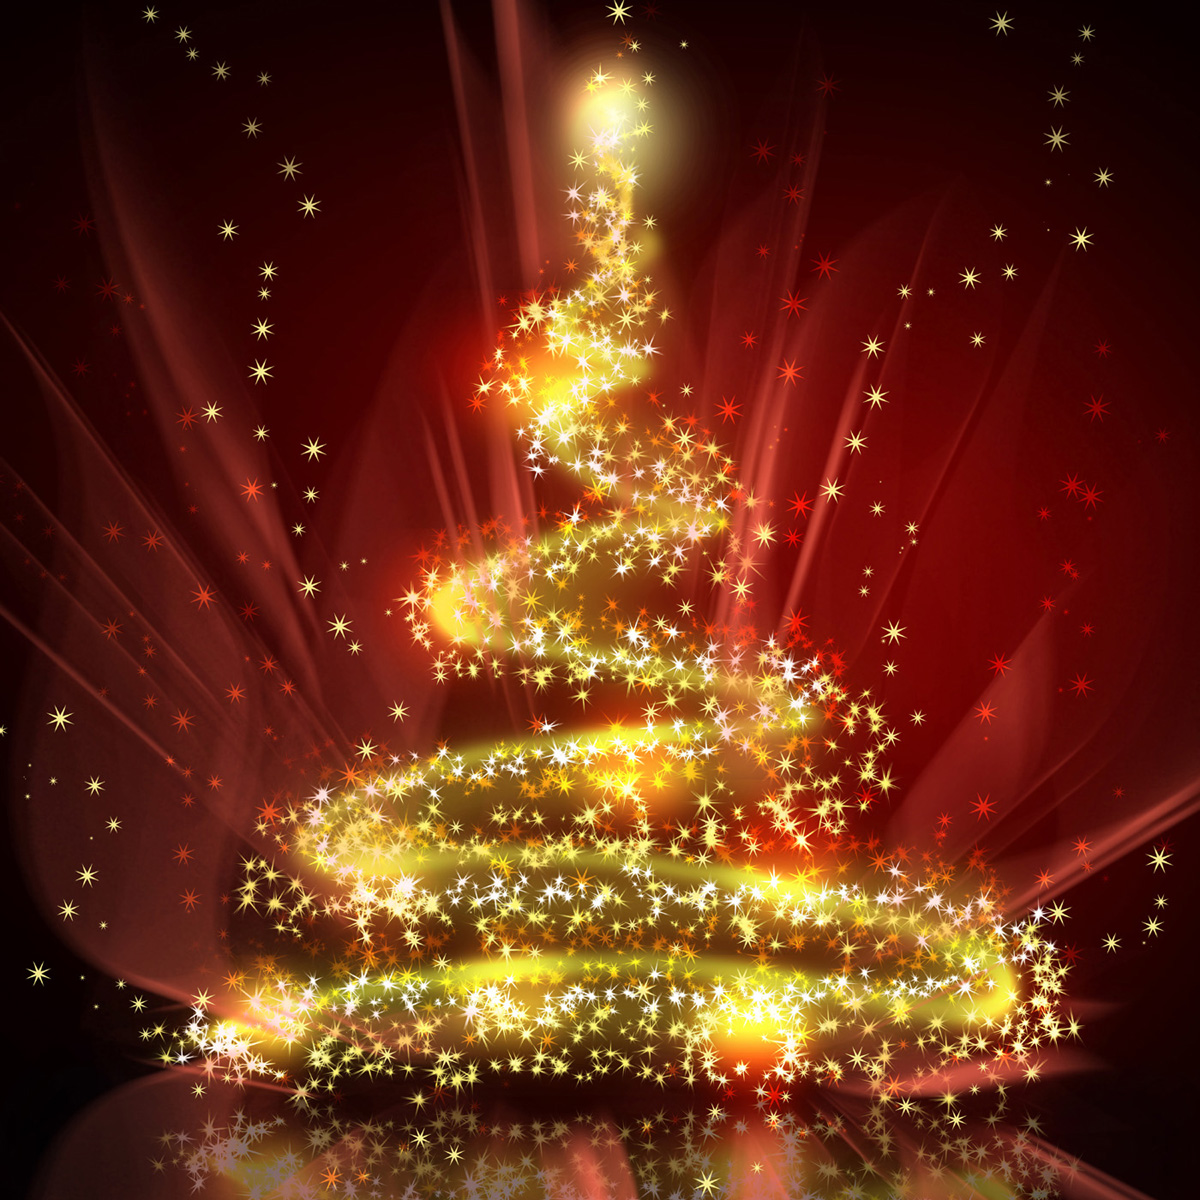 Christmas background 27148